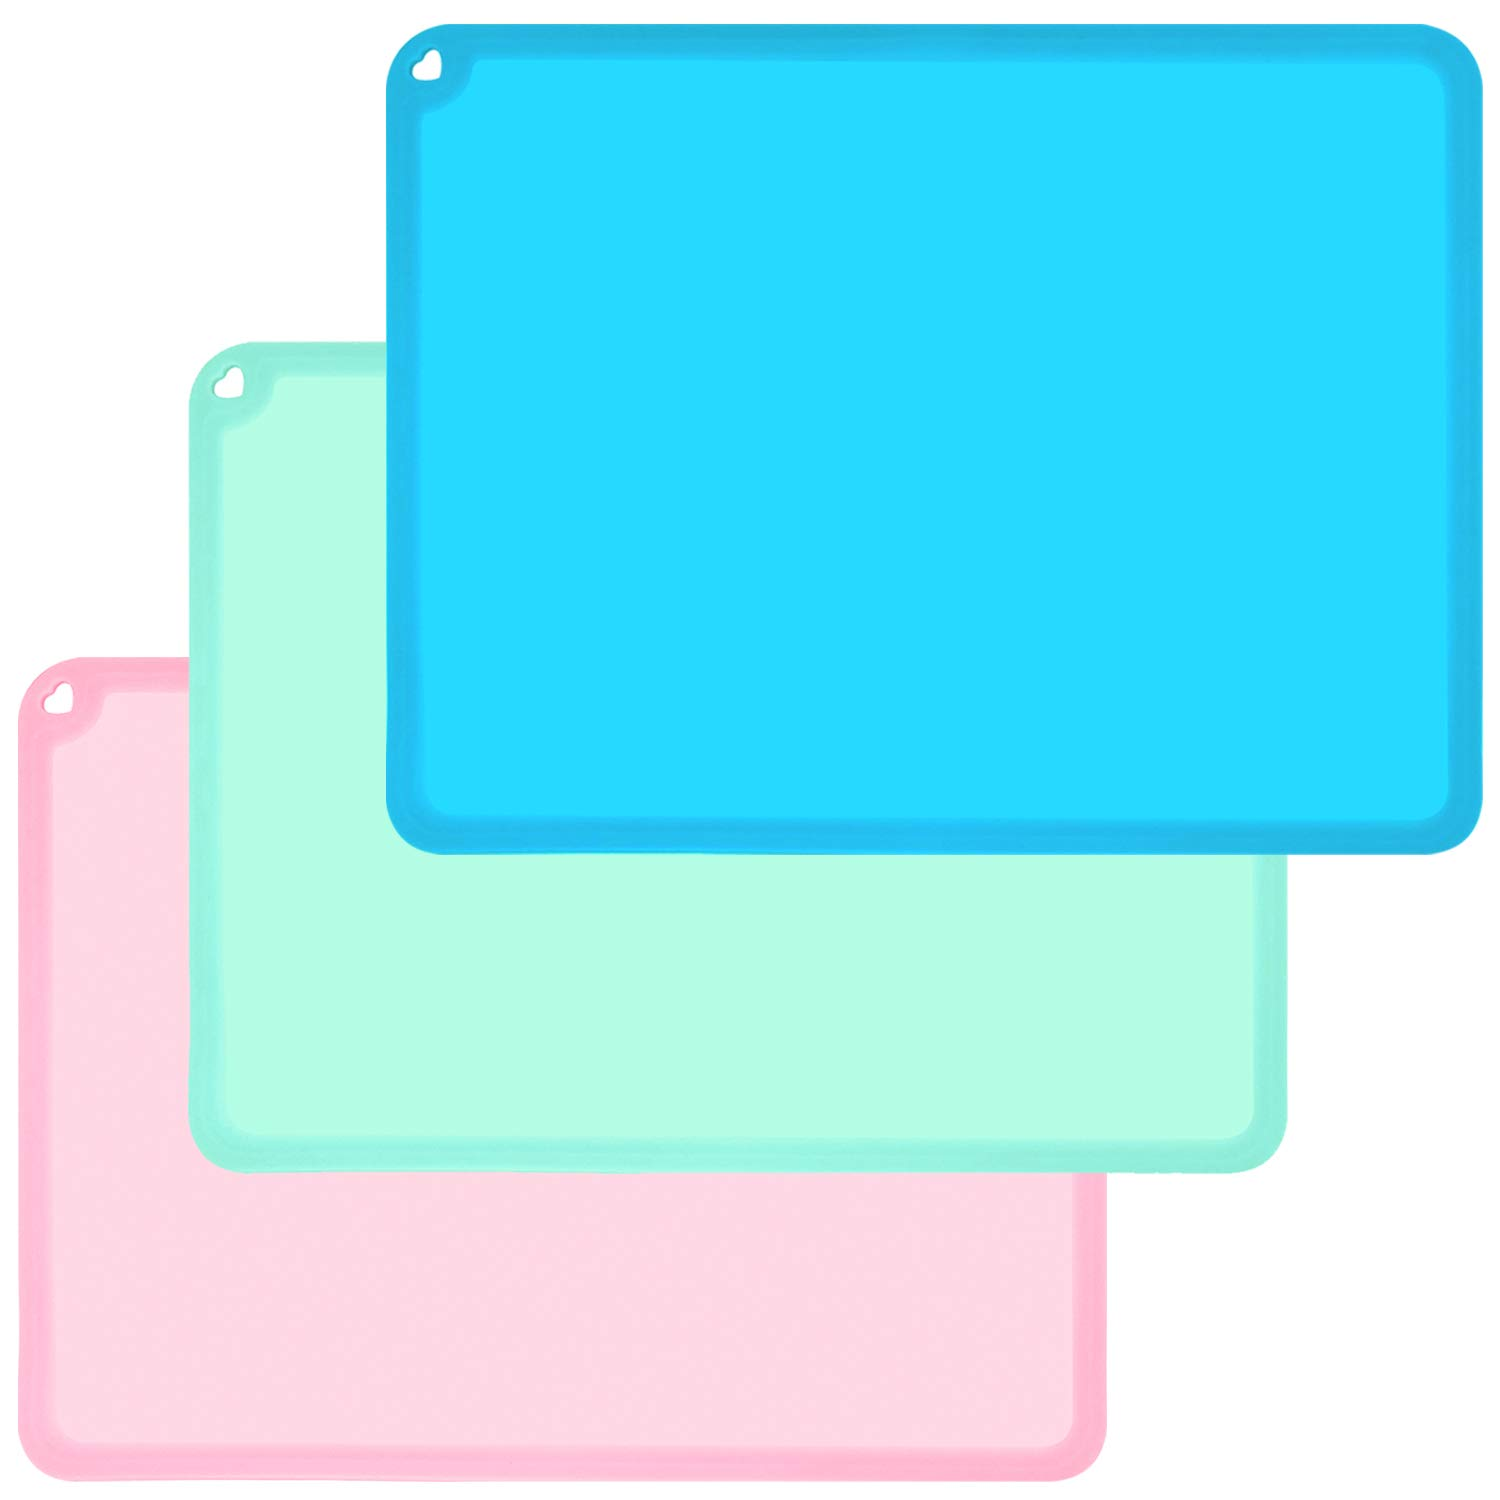 Kids Placemats, Baby Placemats for Kids Toddler Children Reusable Non-Slip Table Mats Baby Food Mats for Restaurant, 3 Pack, Blue/Green/Pink